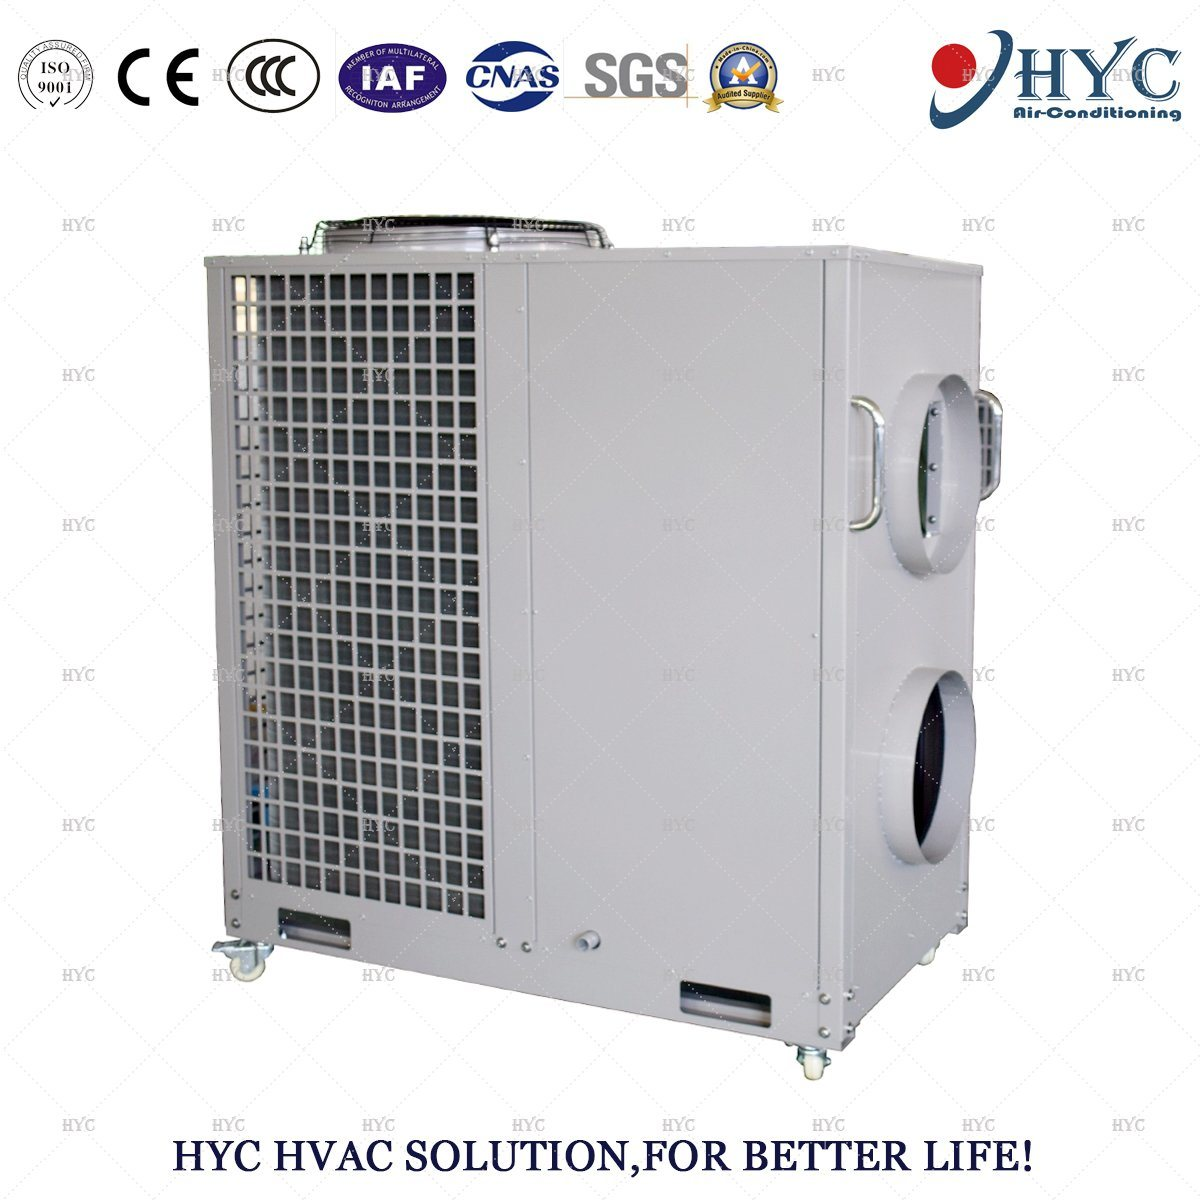 Portable Tent Air Conditioner >> Air Conditioner Camping Unit Troubleshooting And Maintaining Your